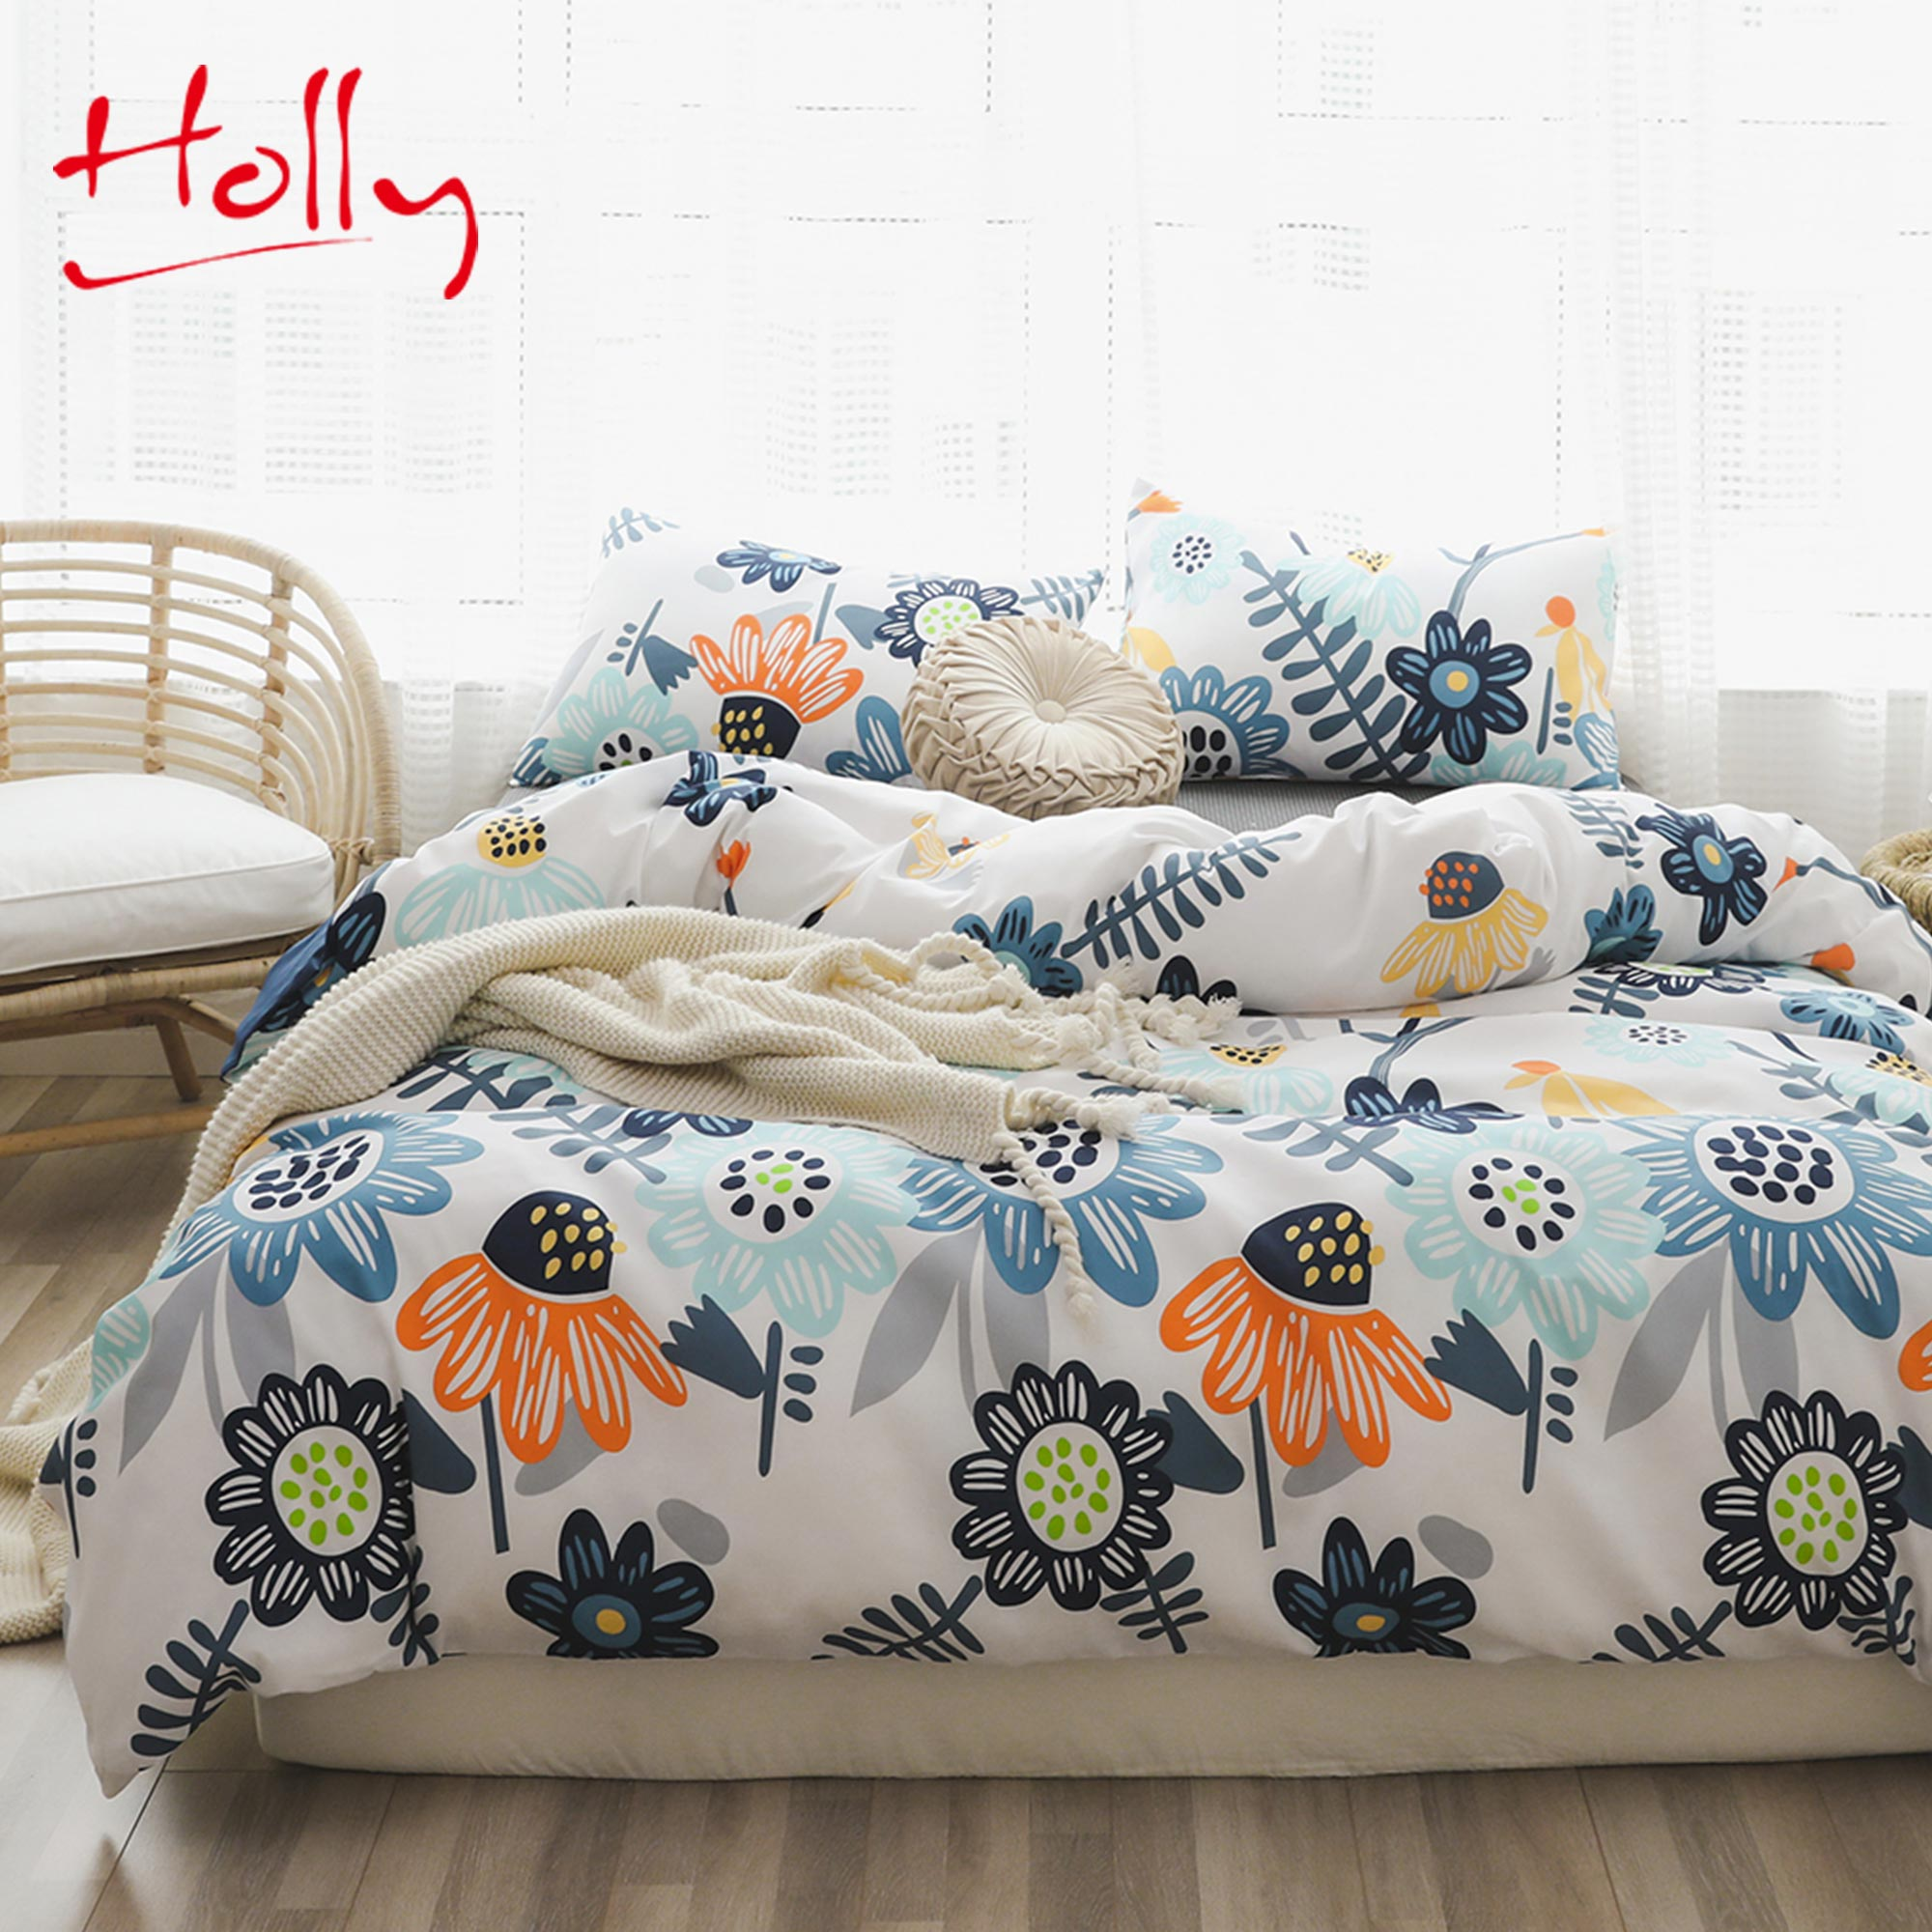 Holly comforters bedding sets  king size cotton bedsheets